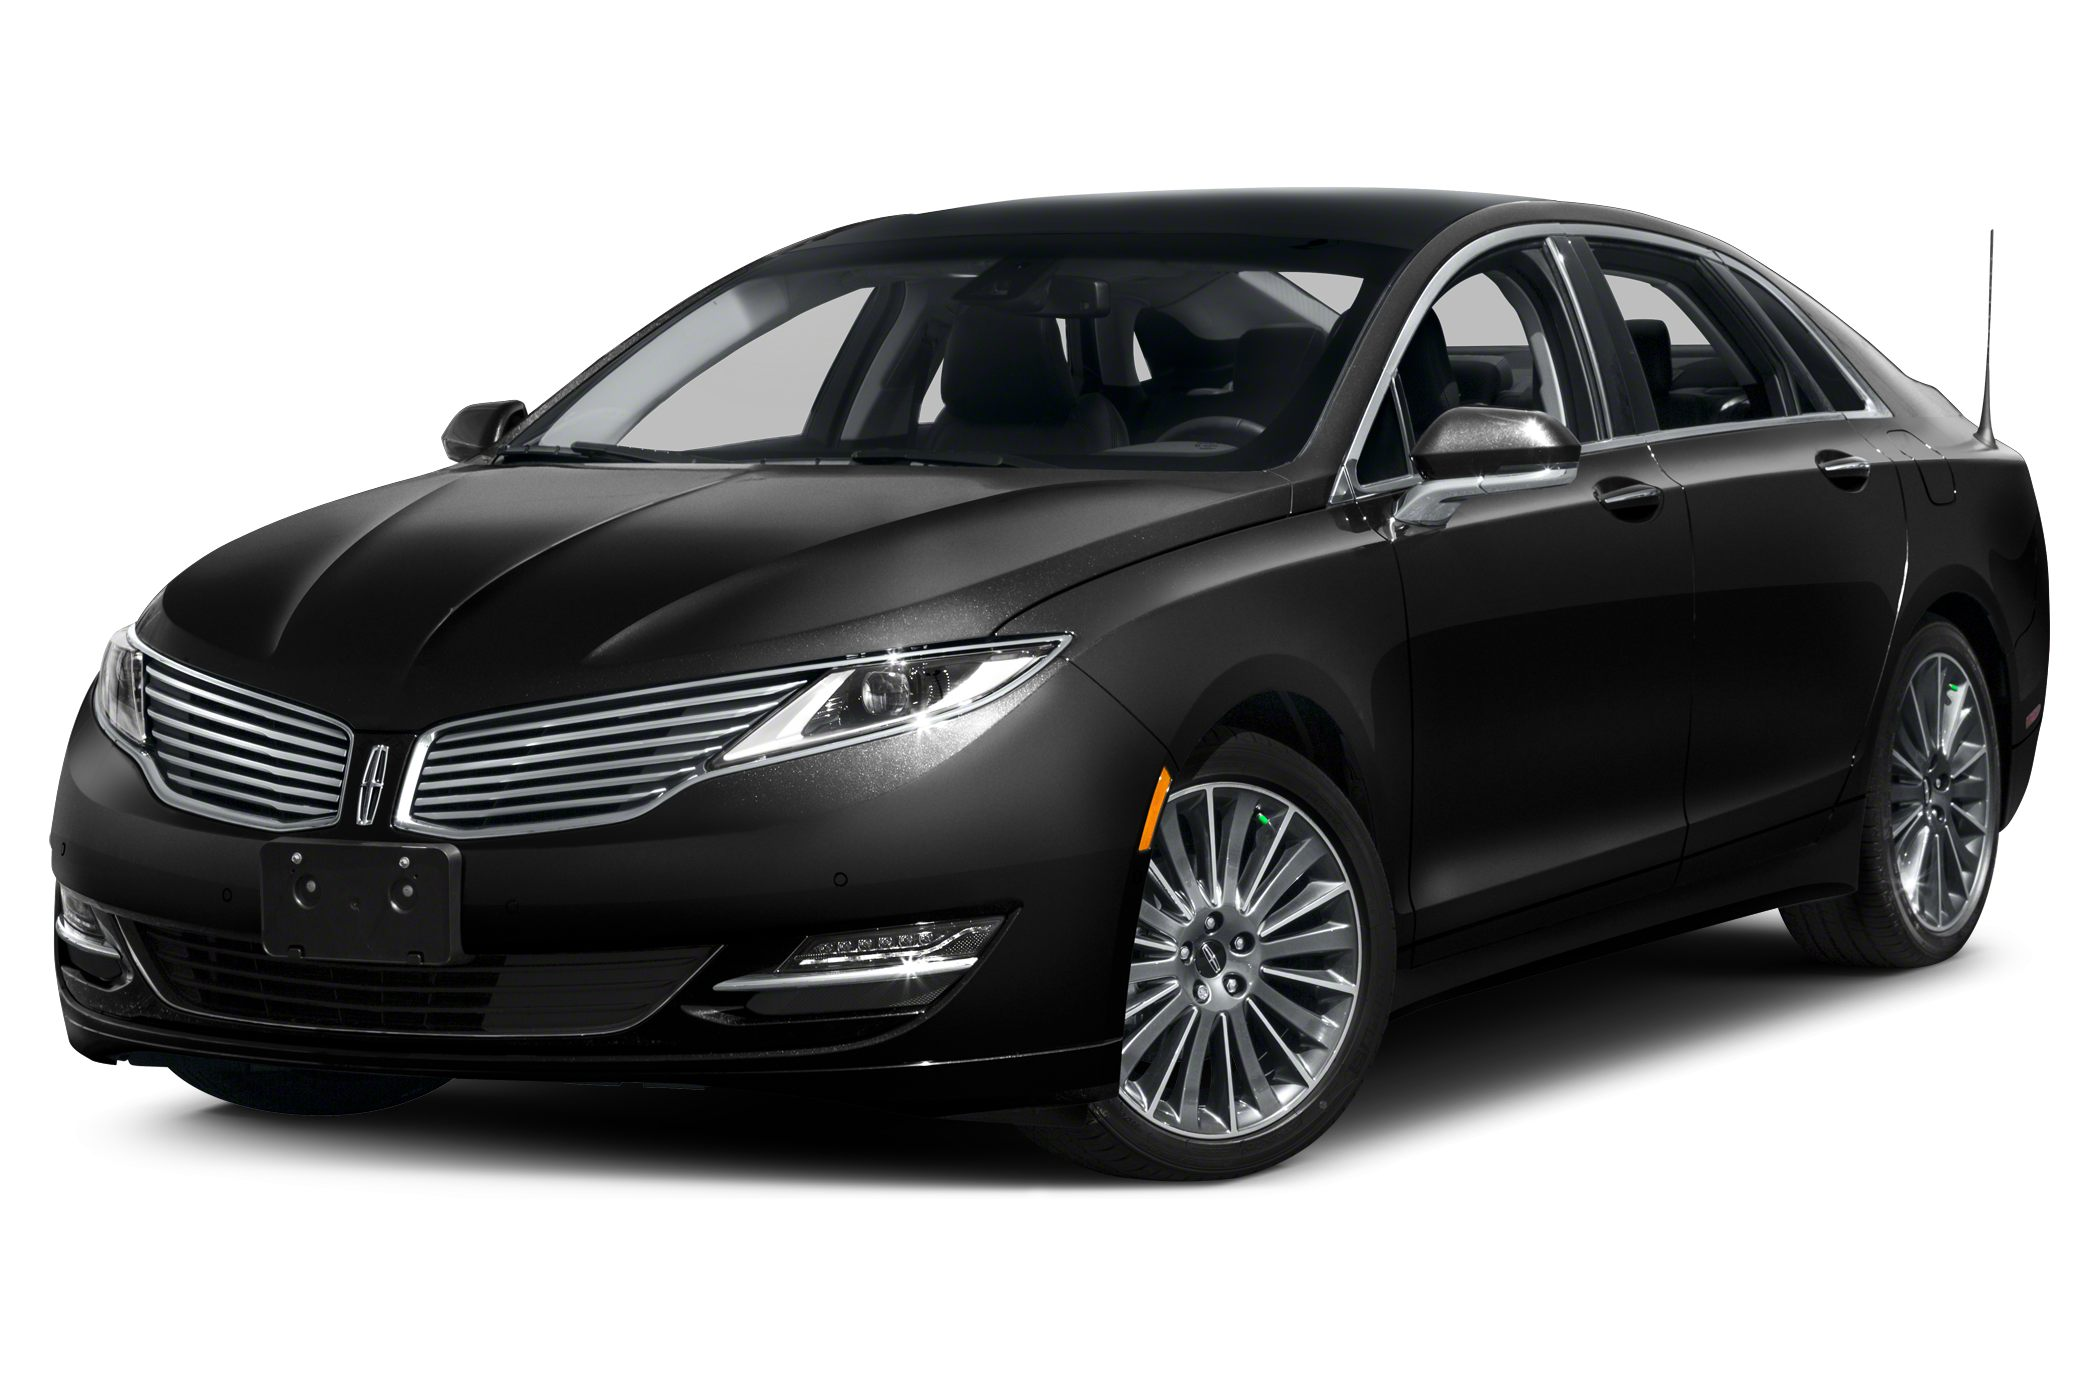 2014 Lincoln MKZ Hybrid Base Sedan for sale in Bakersfield for $29,994 with 20,303 miles.